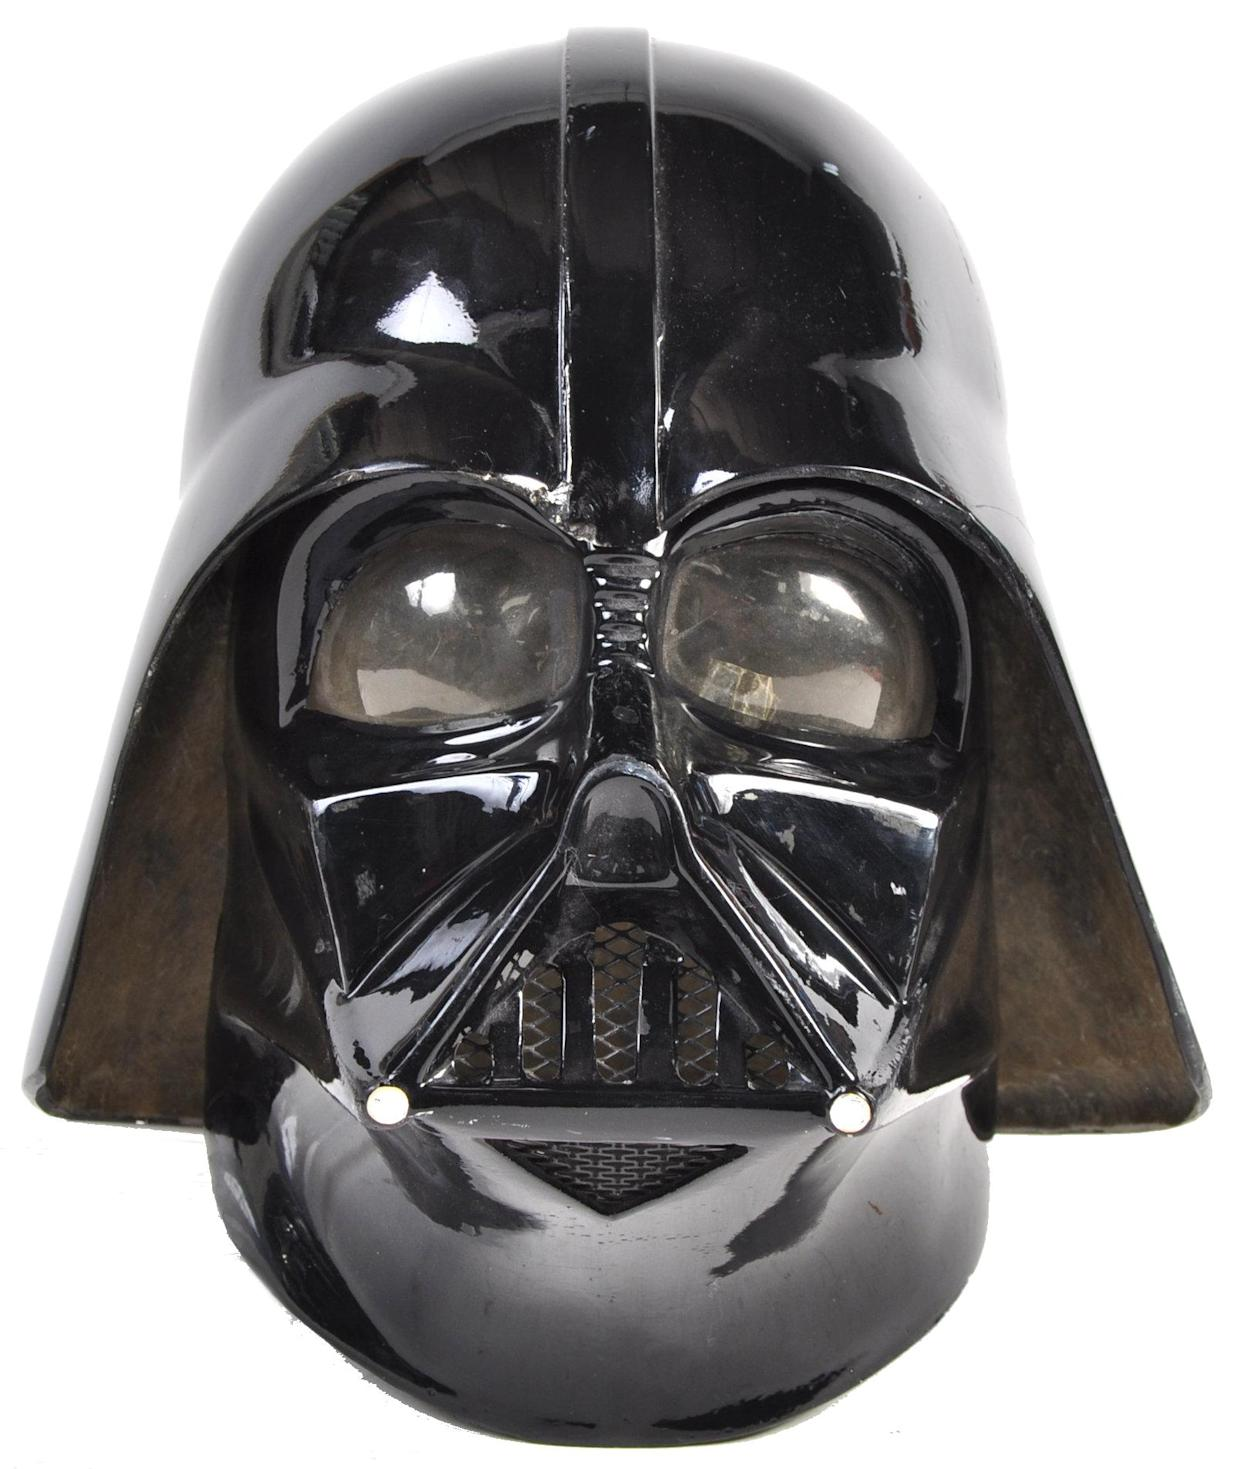 Darth Vader mask (East Bristol Auctions/eastbristol.co.uk)